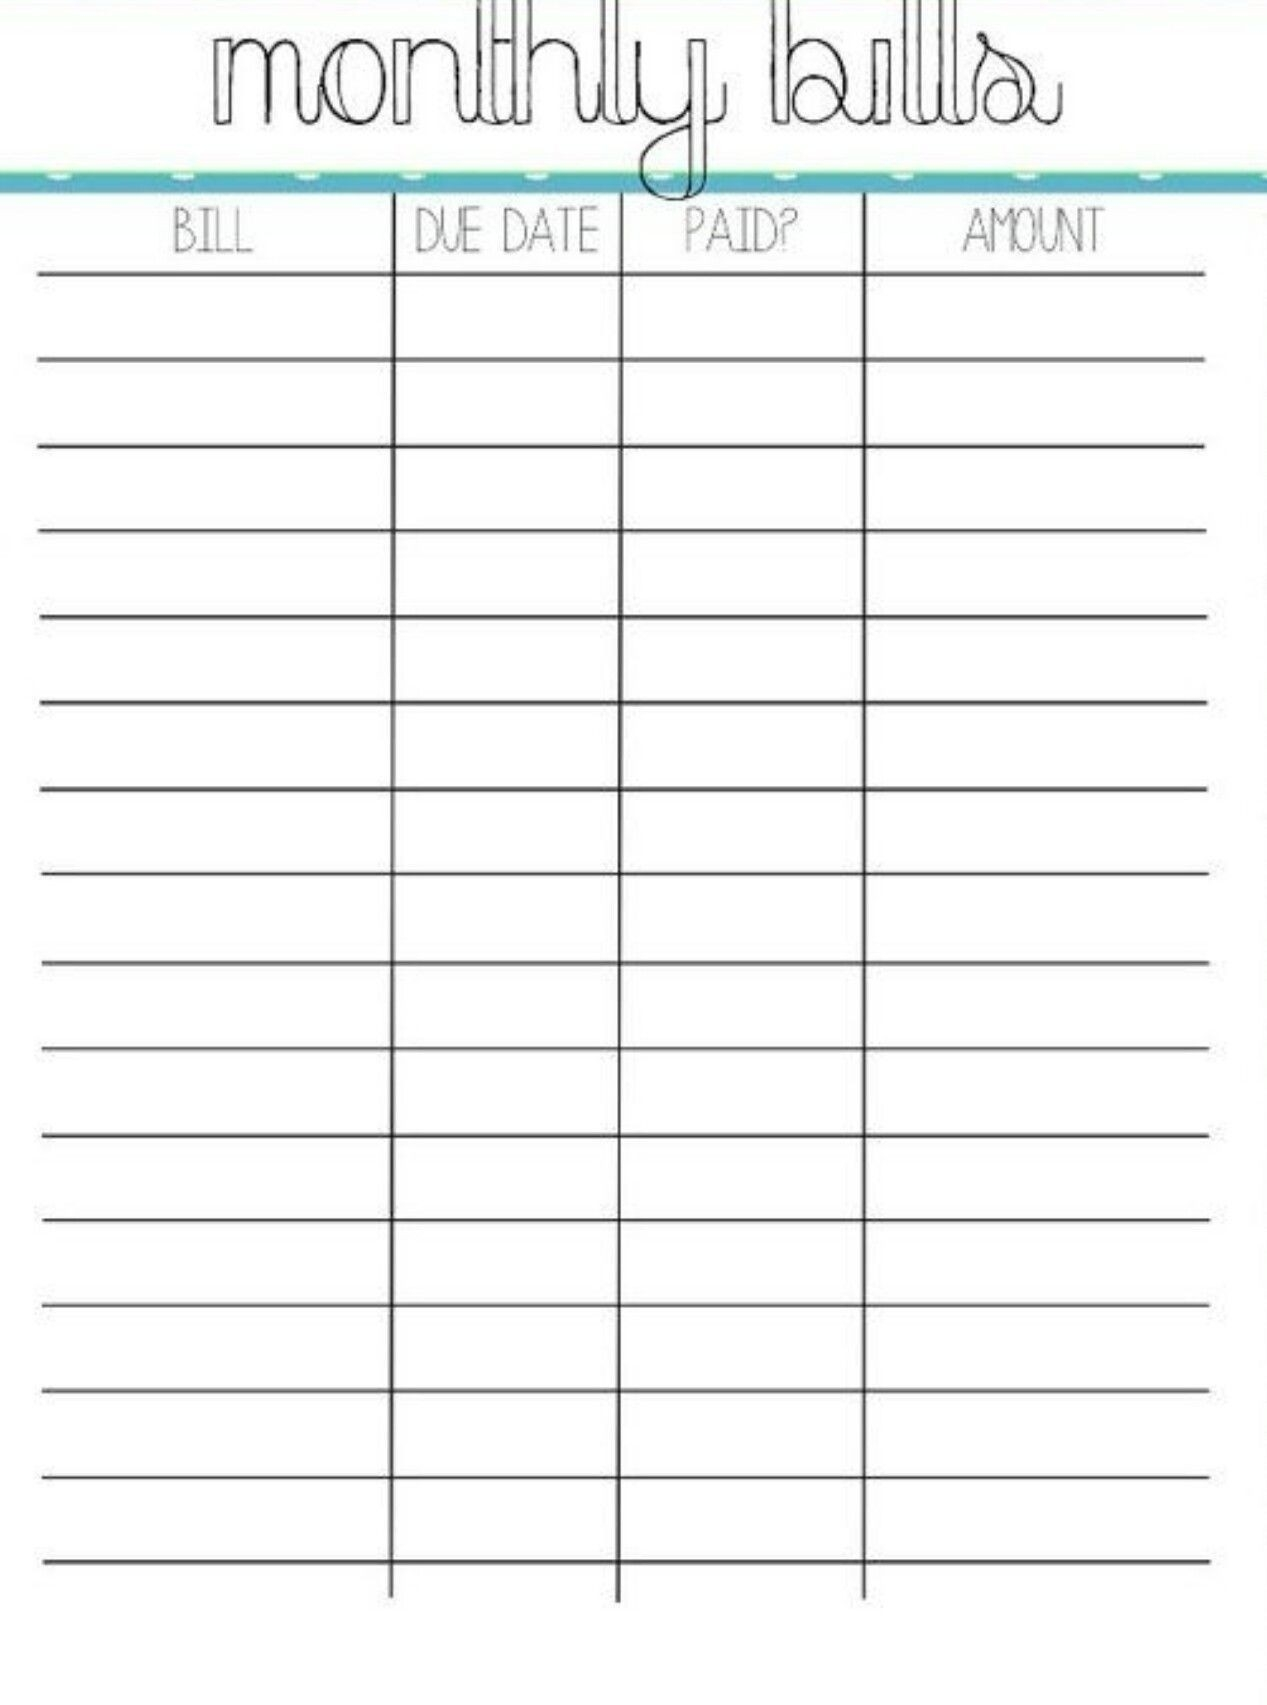 Monthly Pay Bills Worksheet Template Calendar Design